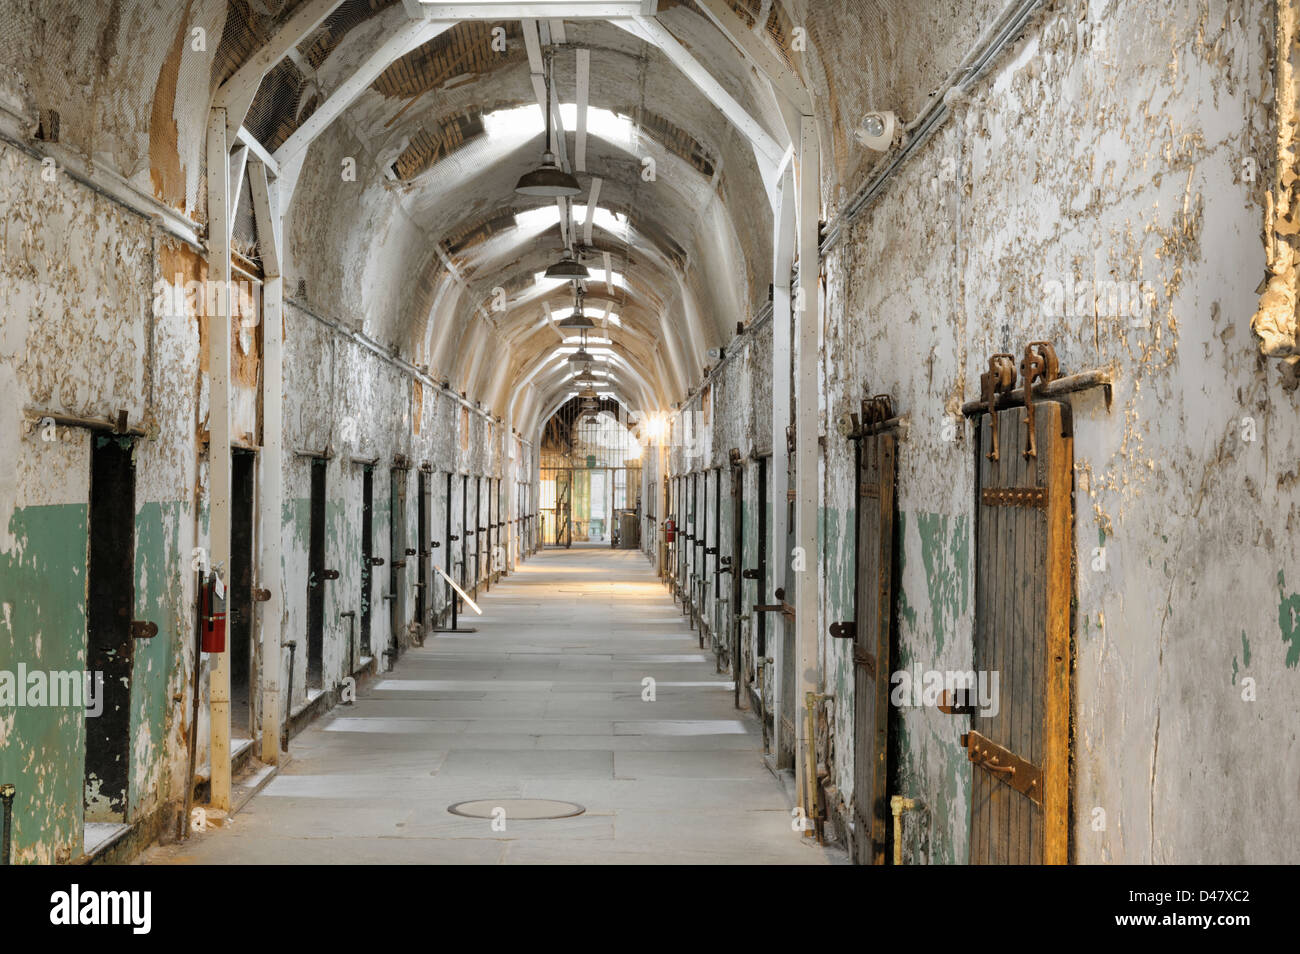 Prison cellblock, empty and old, Eastern State Penitentiary, Philadelphia, PA, USA. - Stock Image